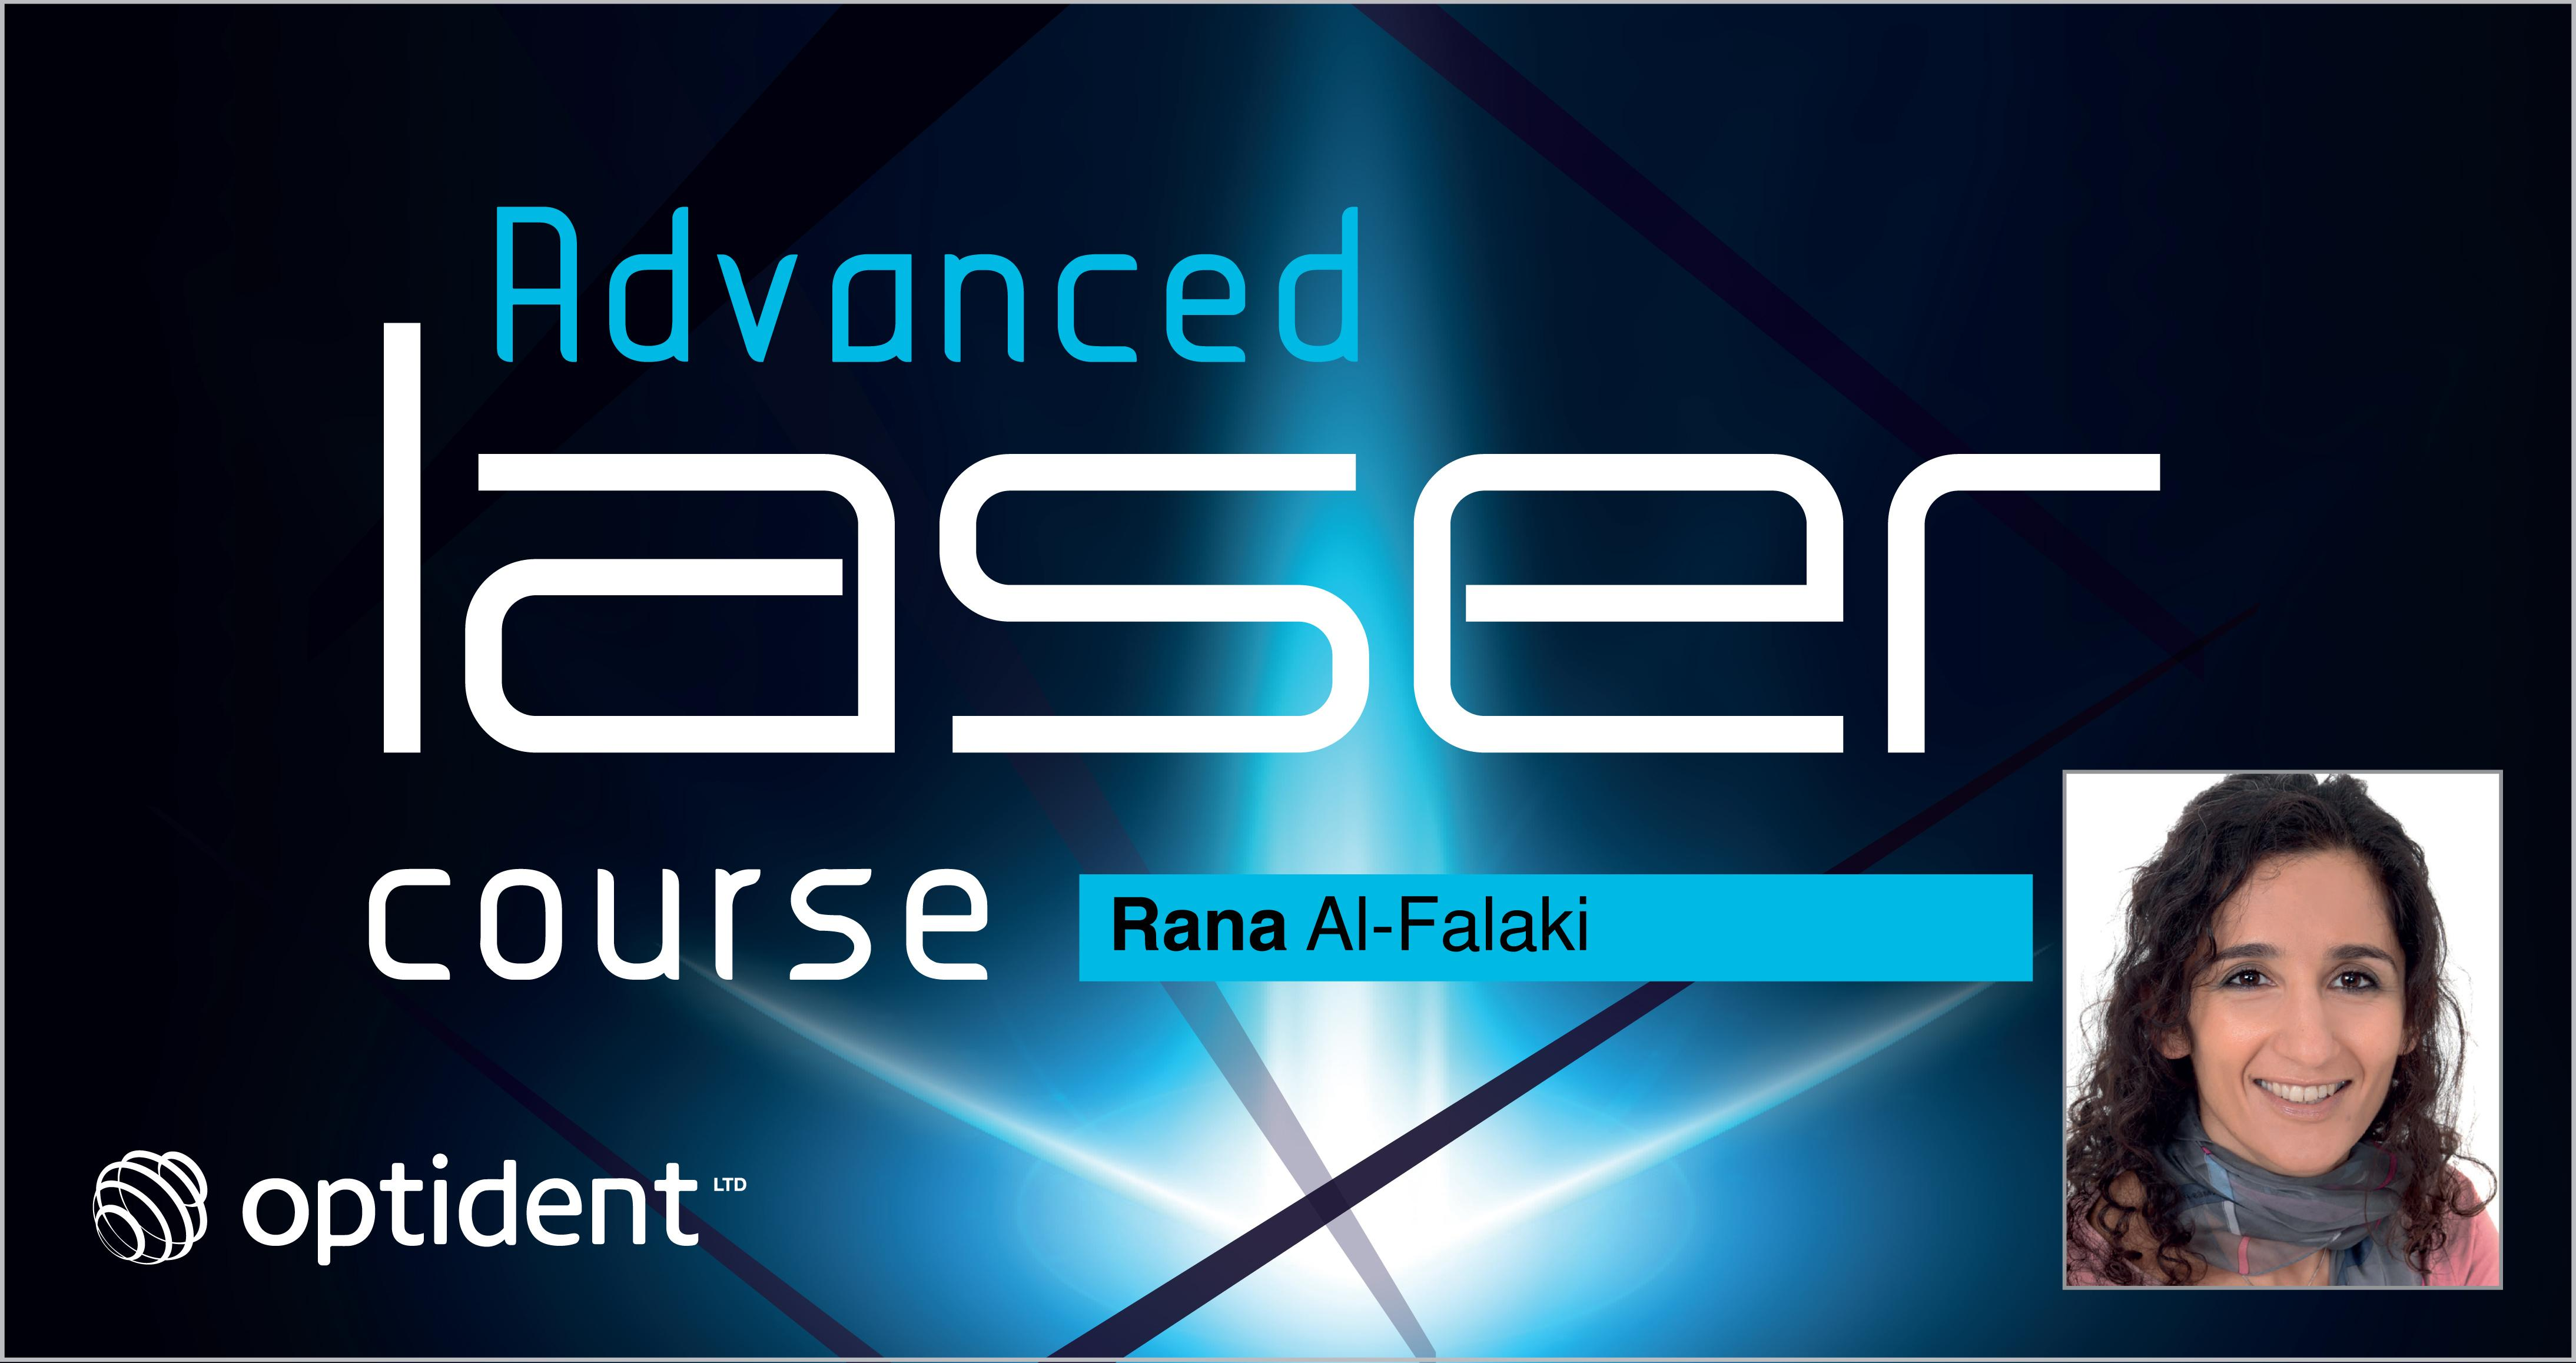 Aesthetic, Implant & Perio Advanced Surgical